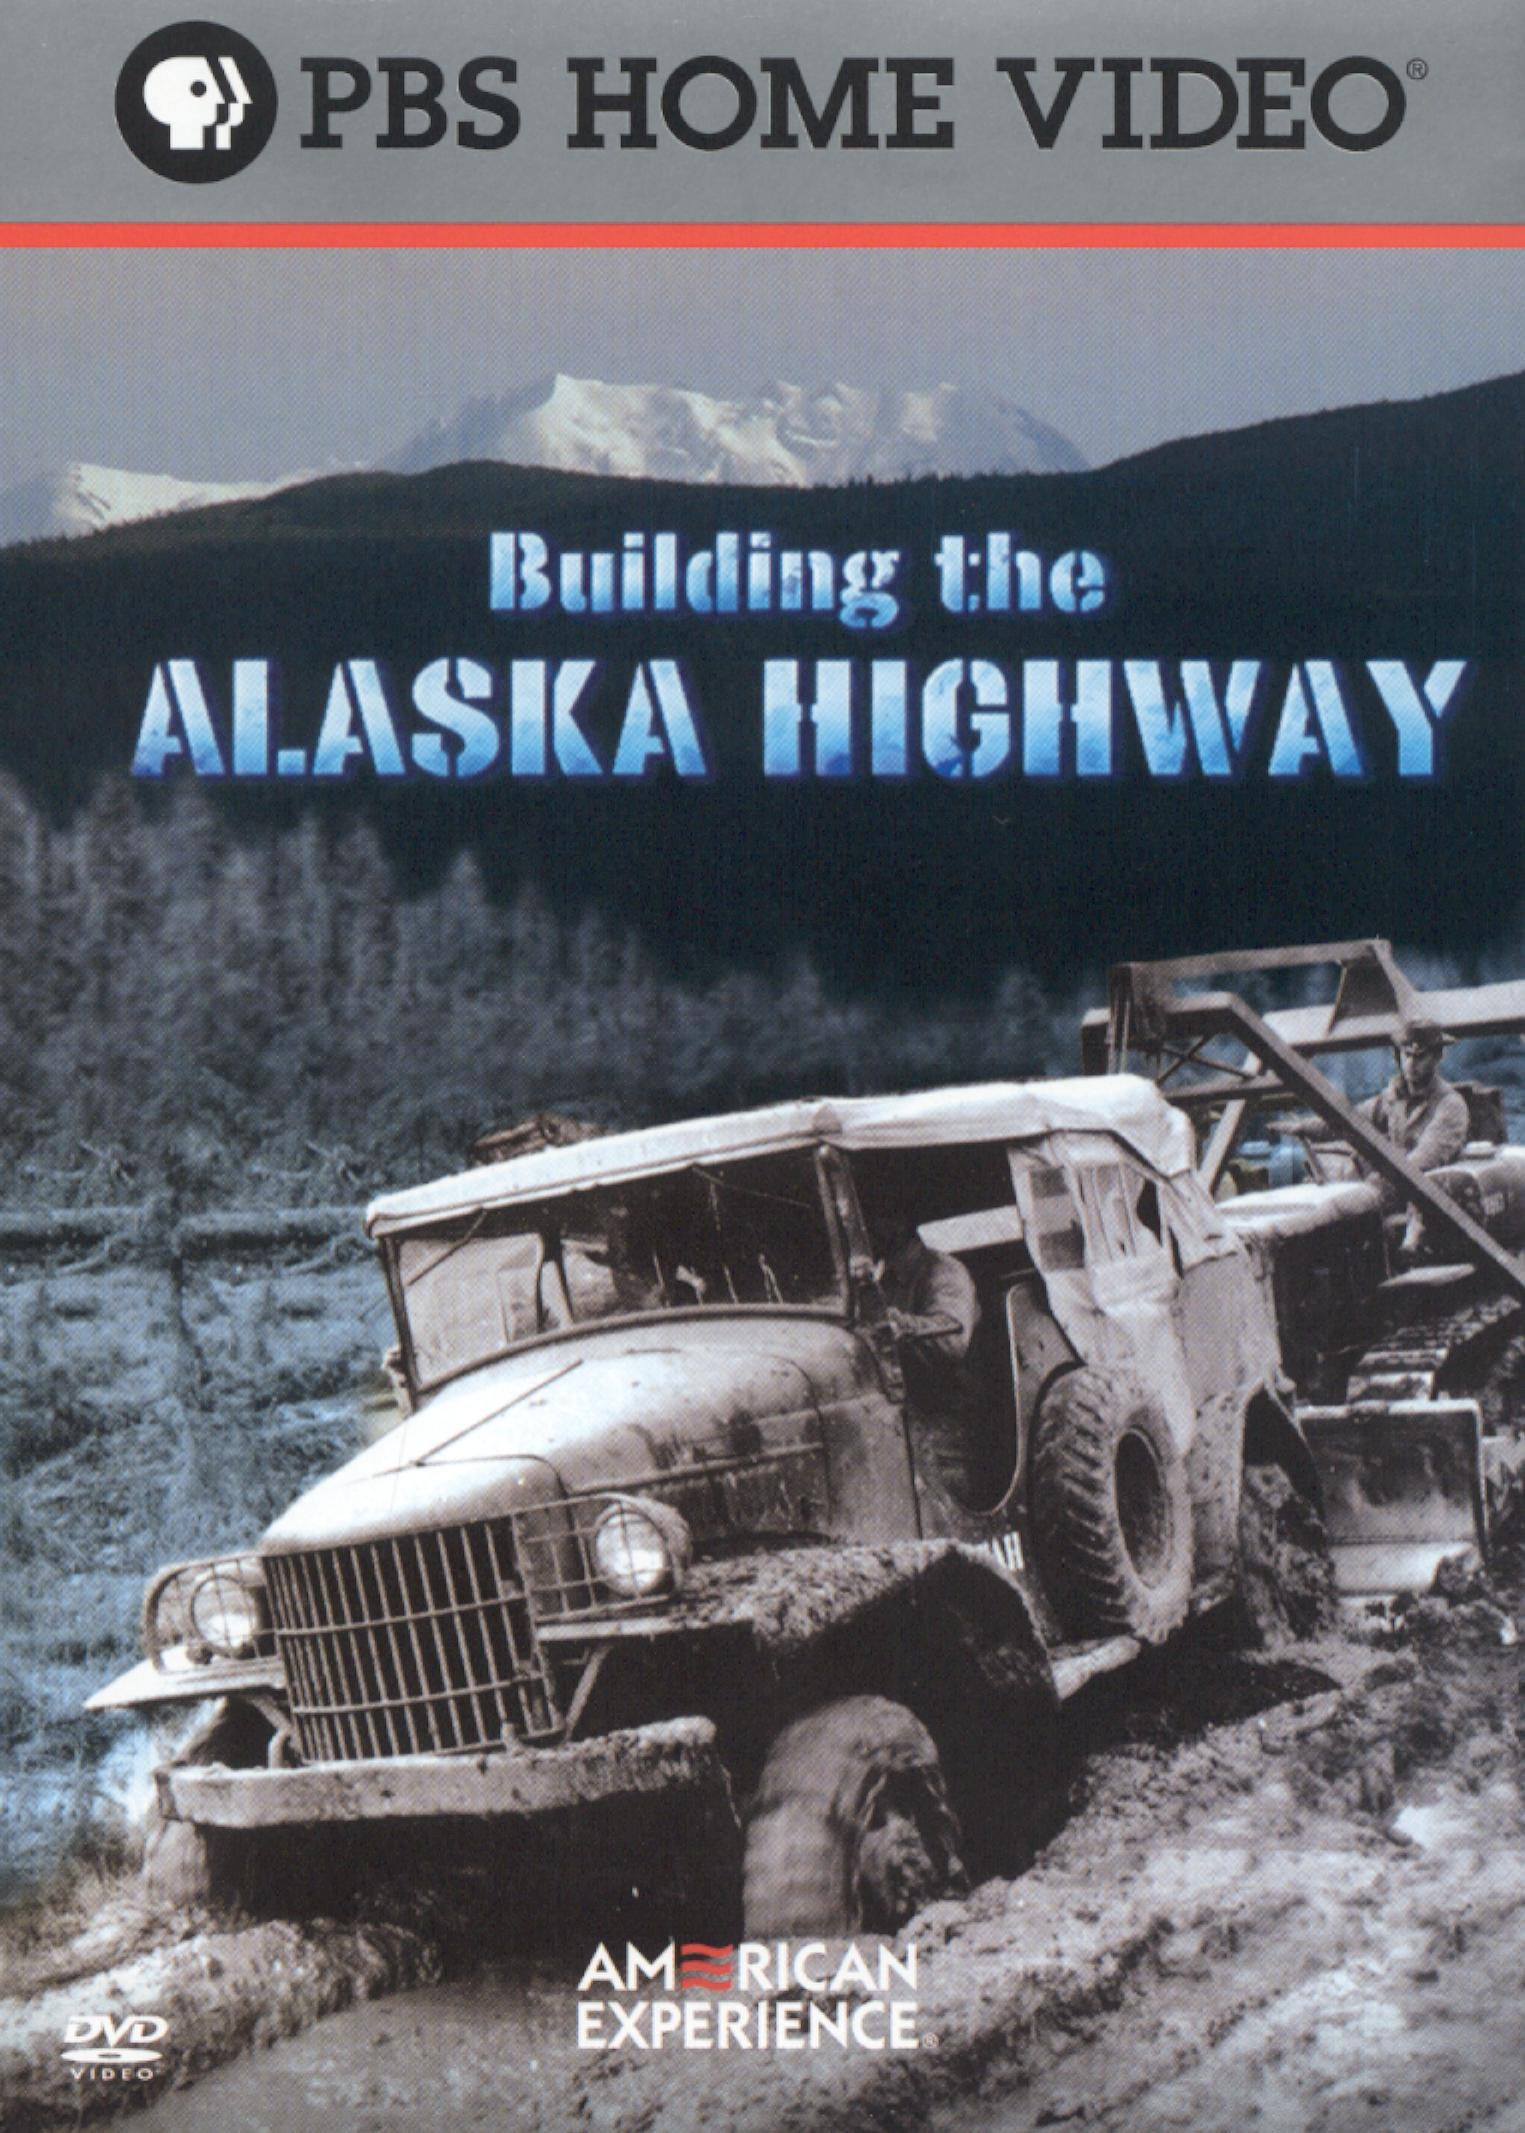 American Experience: Building the Alaska Highway (2005)